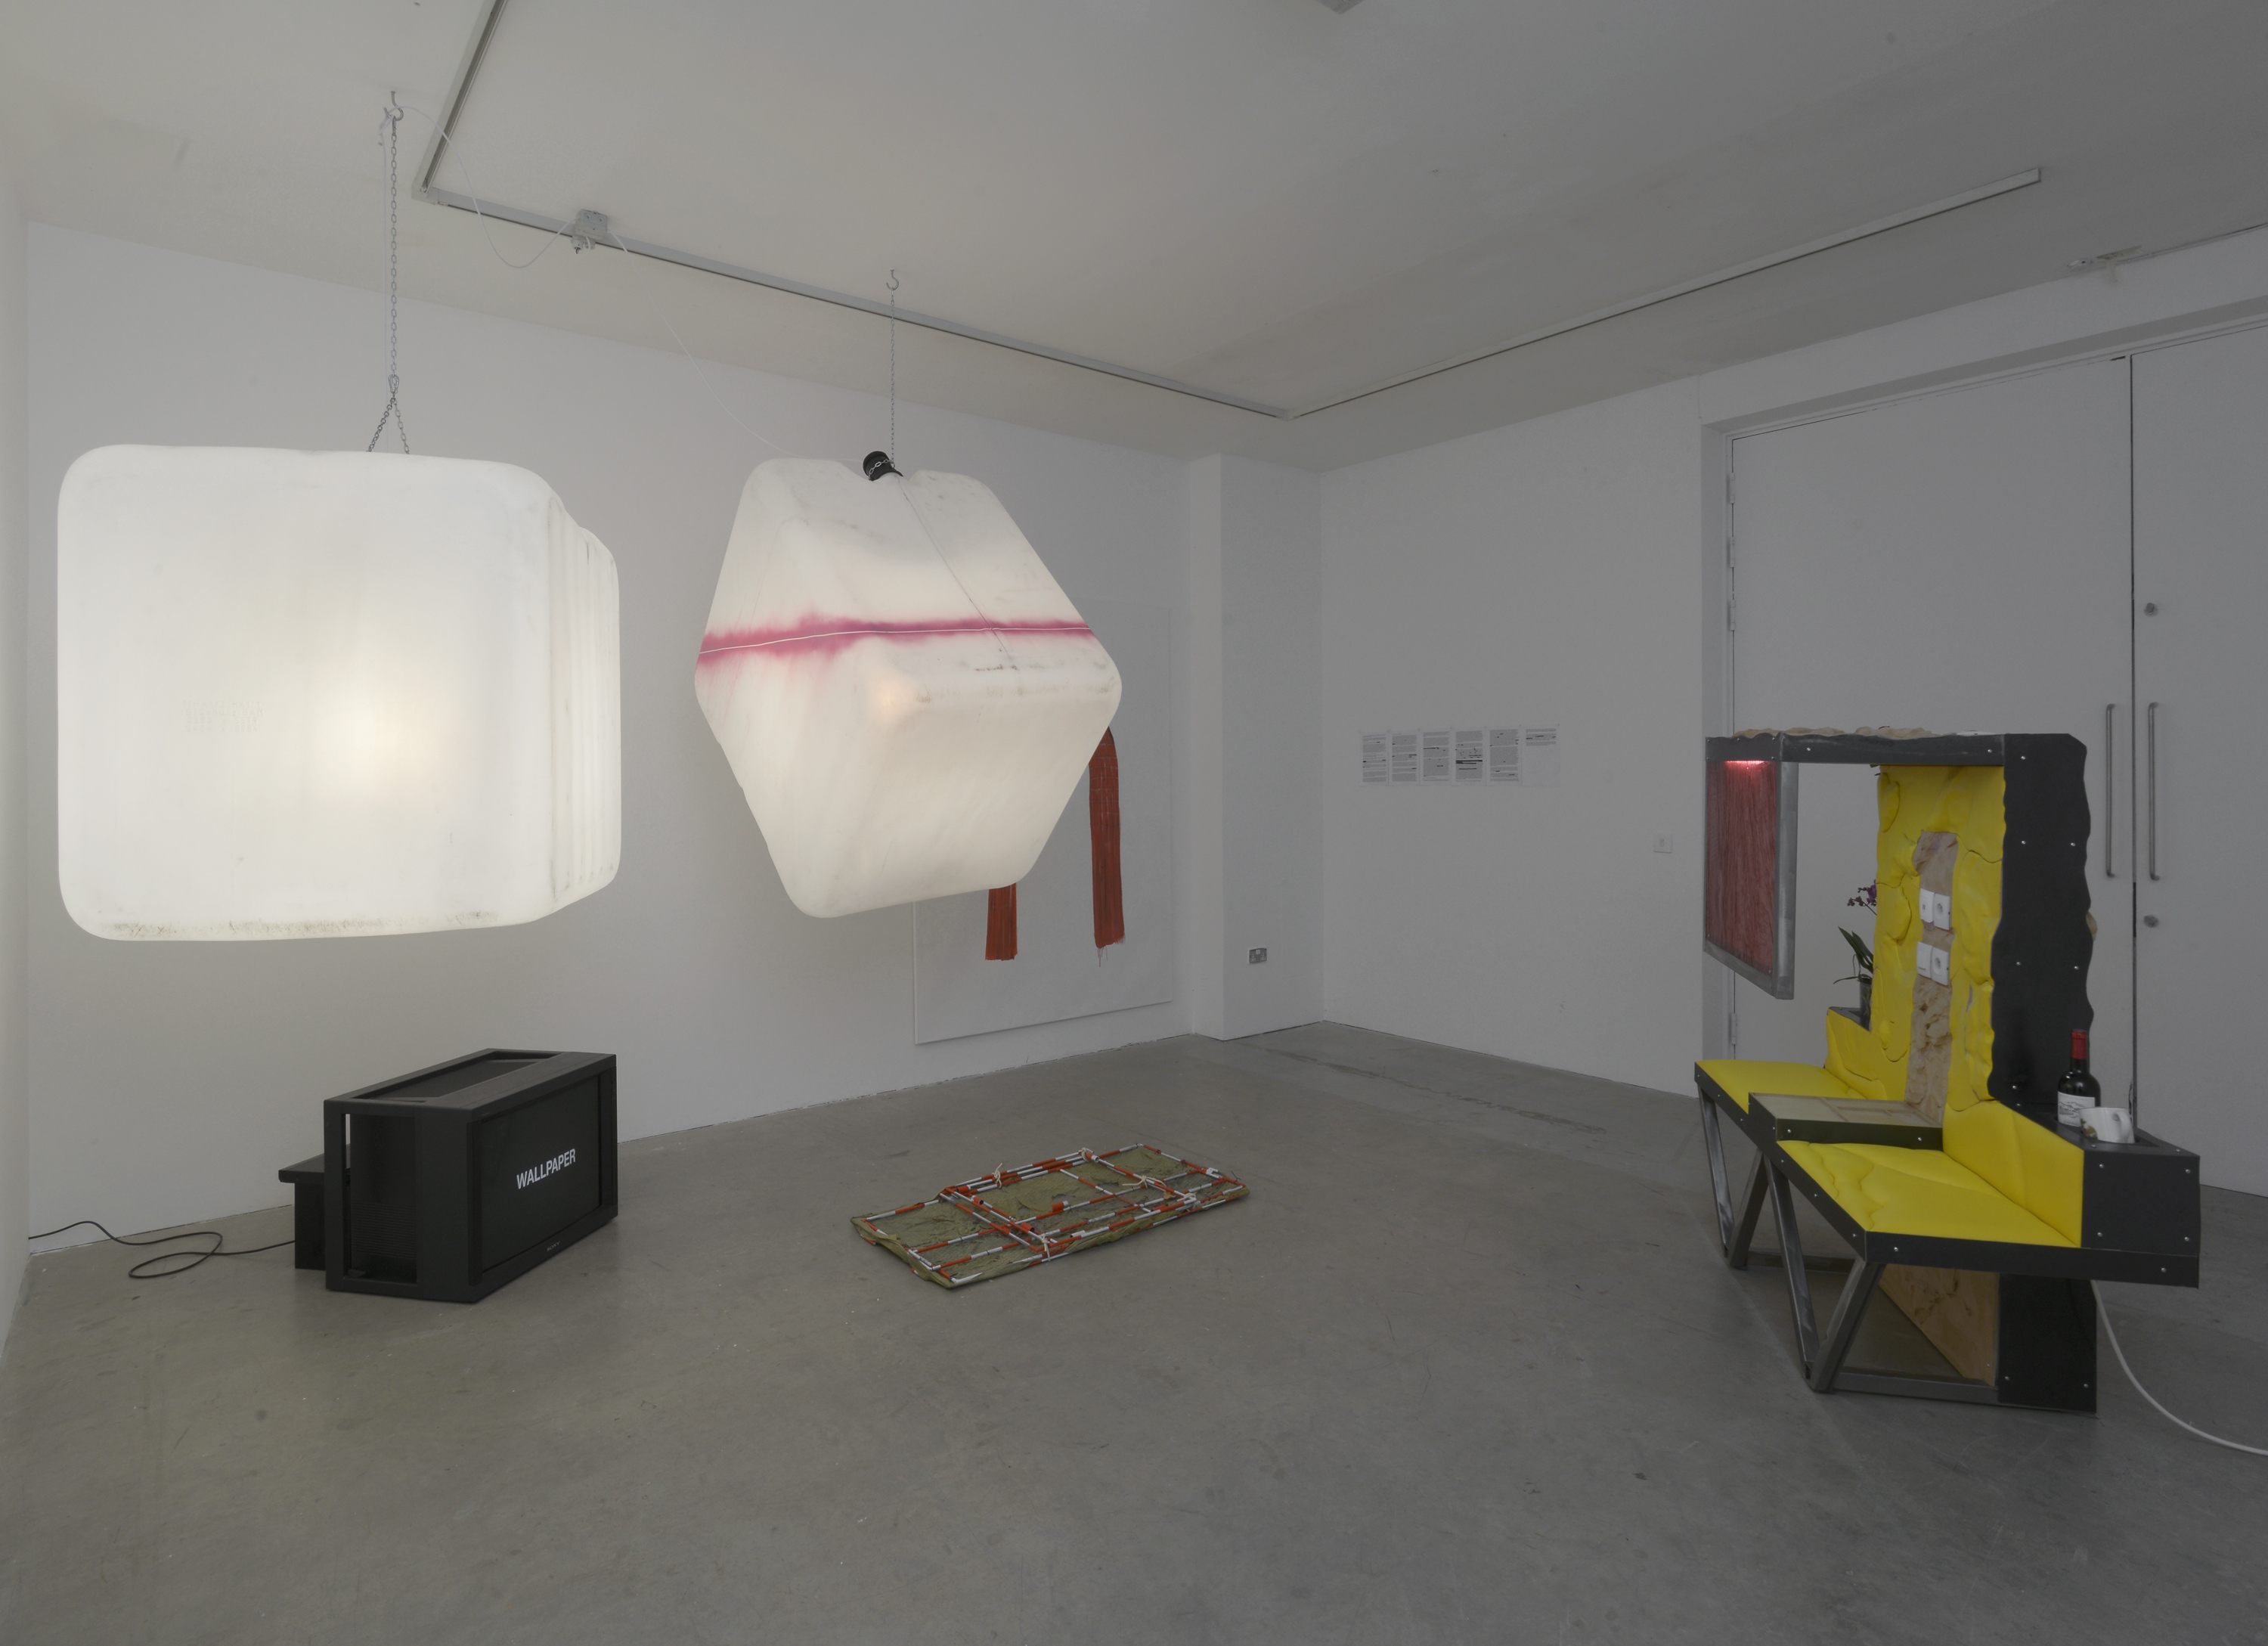 Installation view. Being There Organised by Matt Williams , NeÏl Beloufa,  Hannah Black,  Eliza Douglas,  Klara Lidén,  Colin Lowe & Roddy Thomson,  Stuart Middleton and Avery Singer